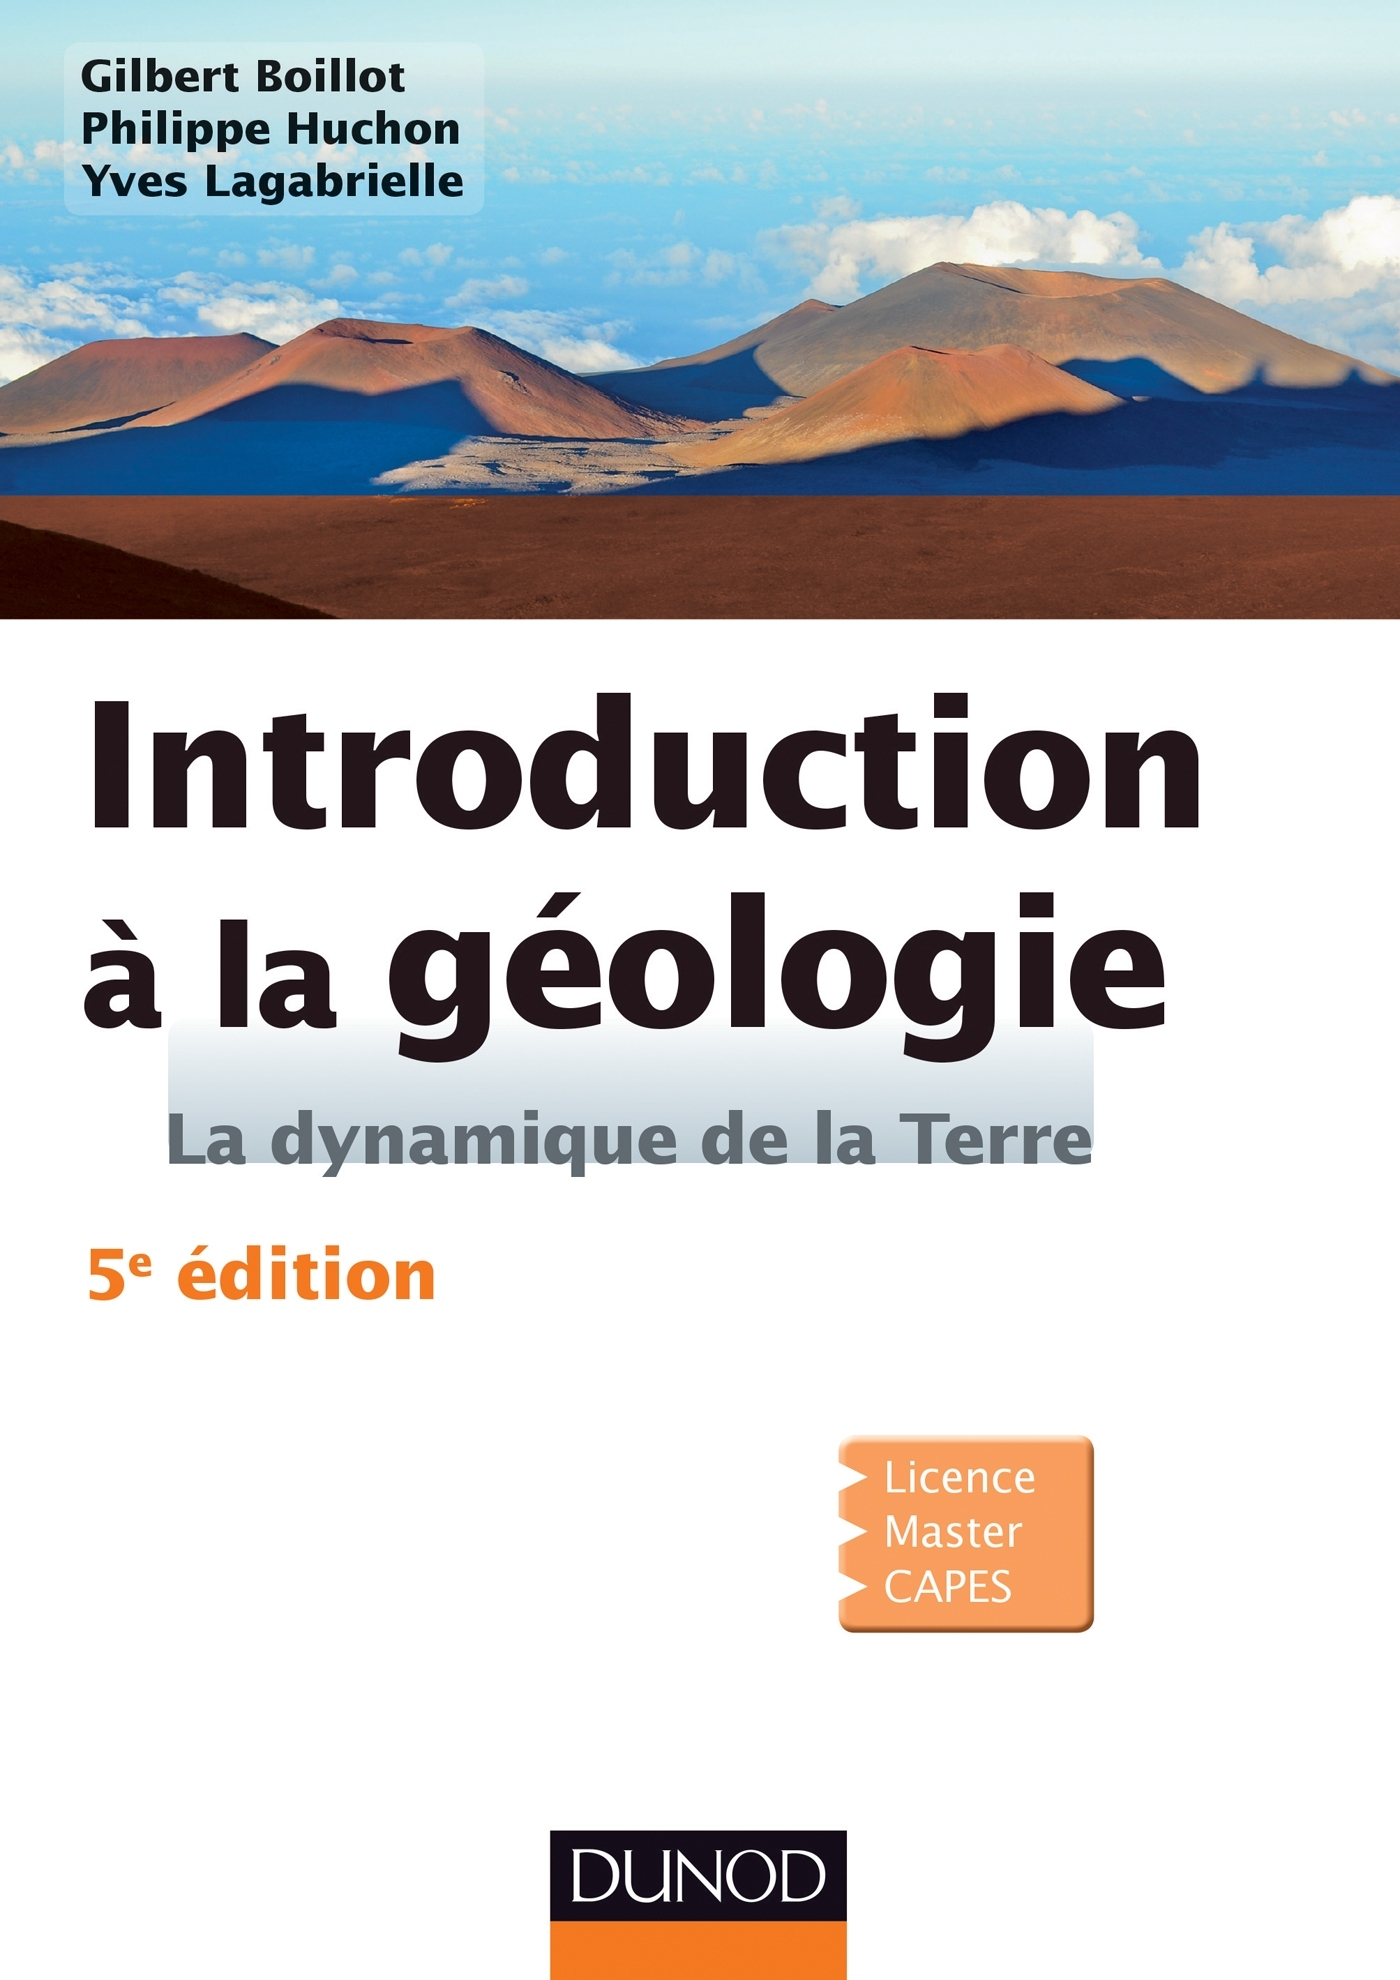 INTRODUCTION A LA GEOLOGIE - 5E EDITION - LA DYNAMIQUE DE LA TERRE